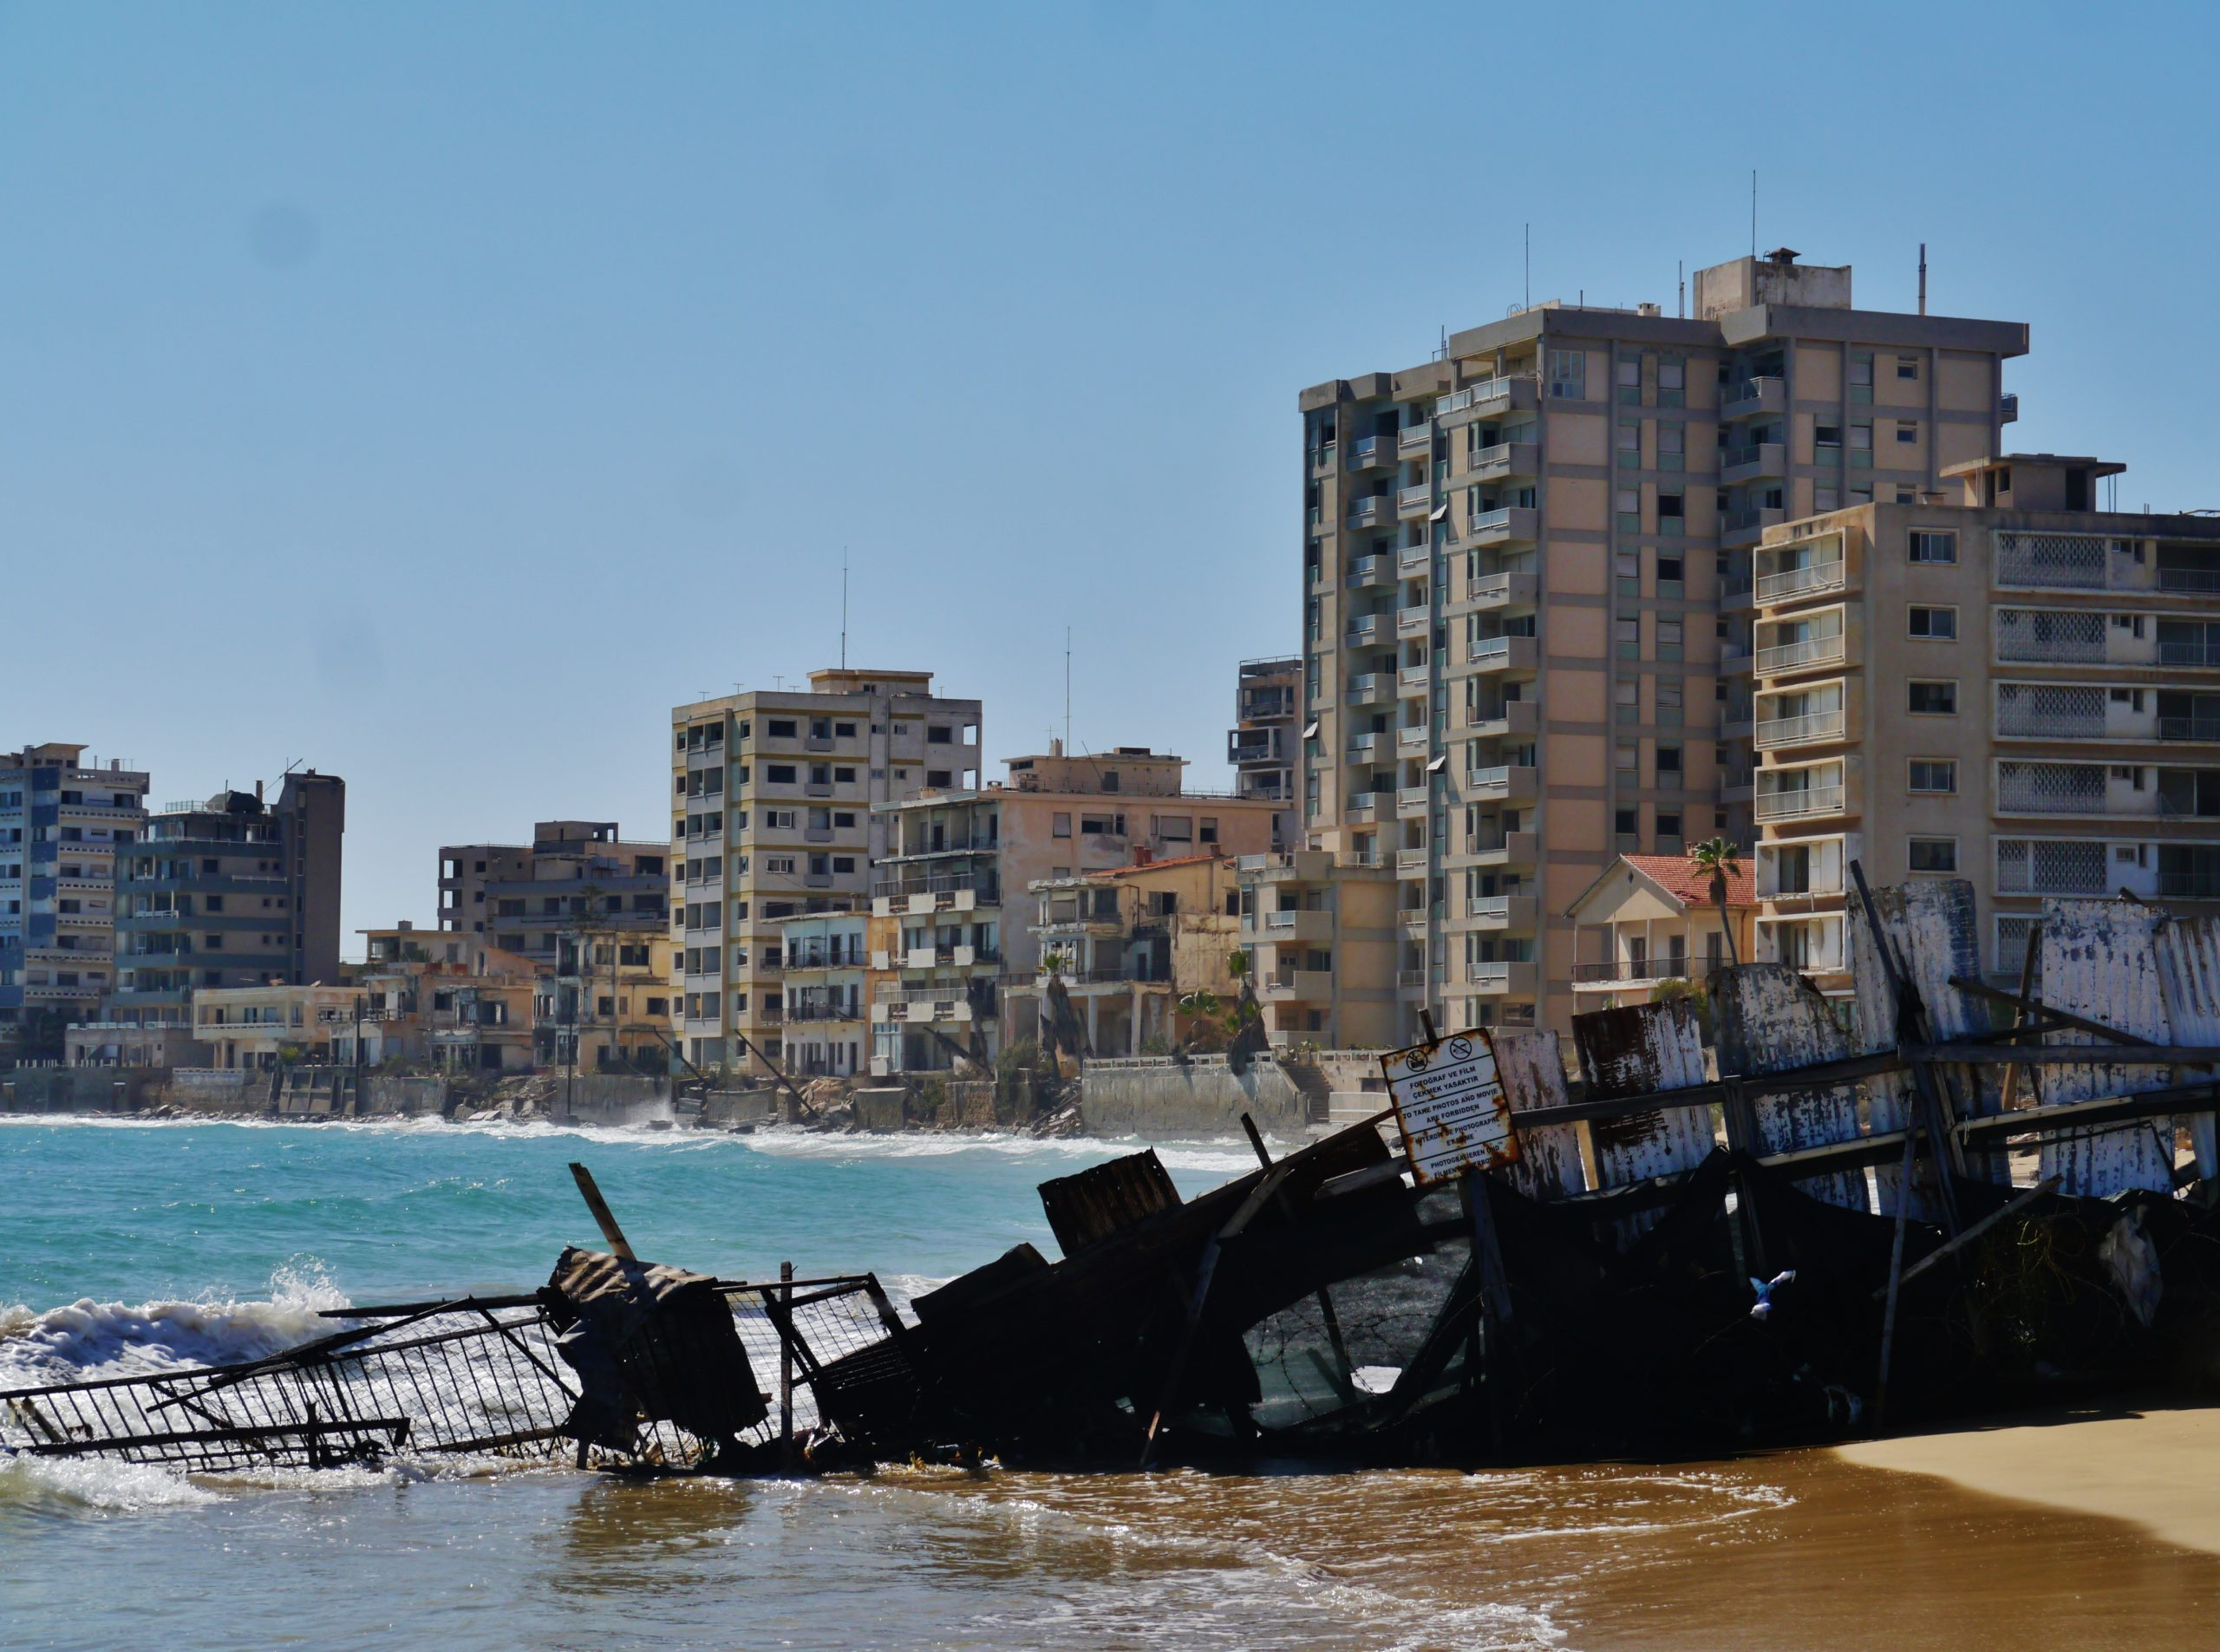 Image of the divided and abandoned city of Varosha, Cyprus